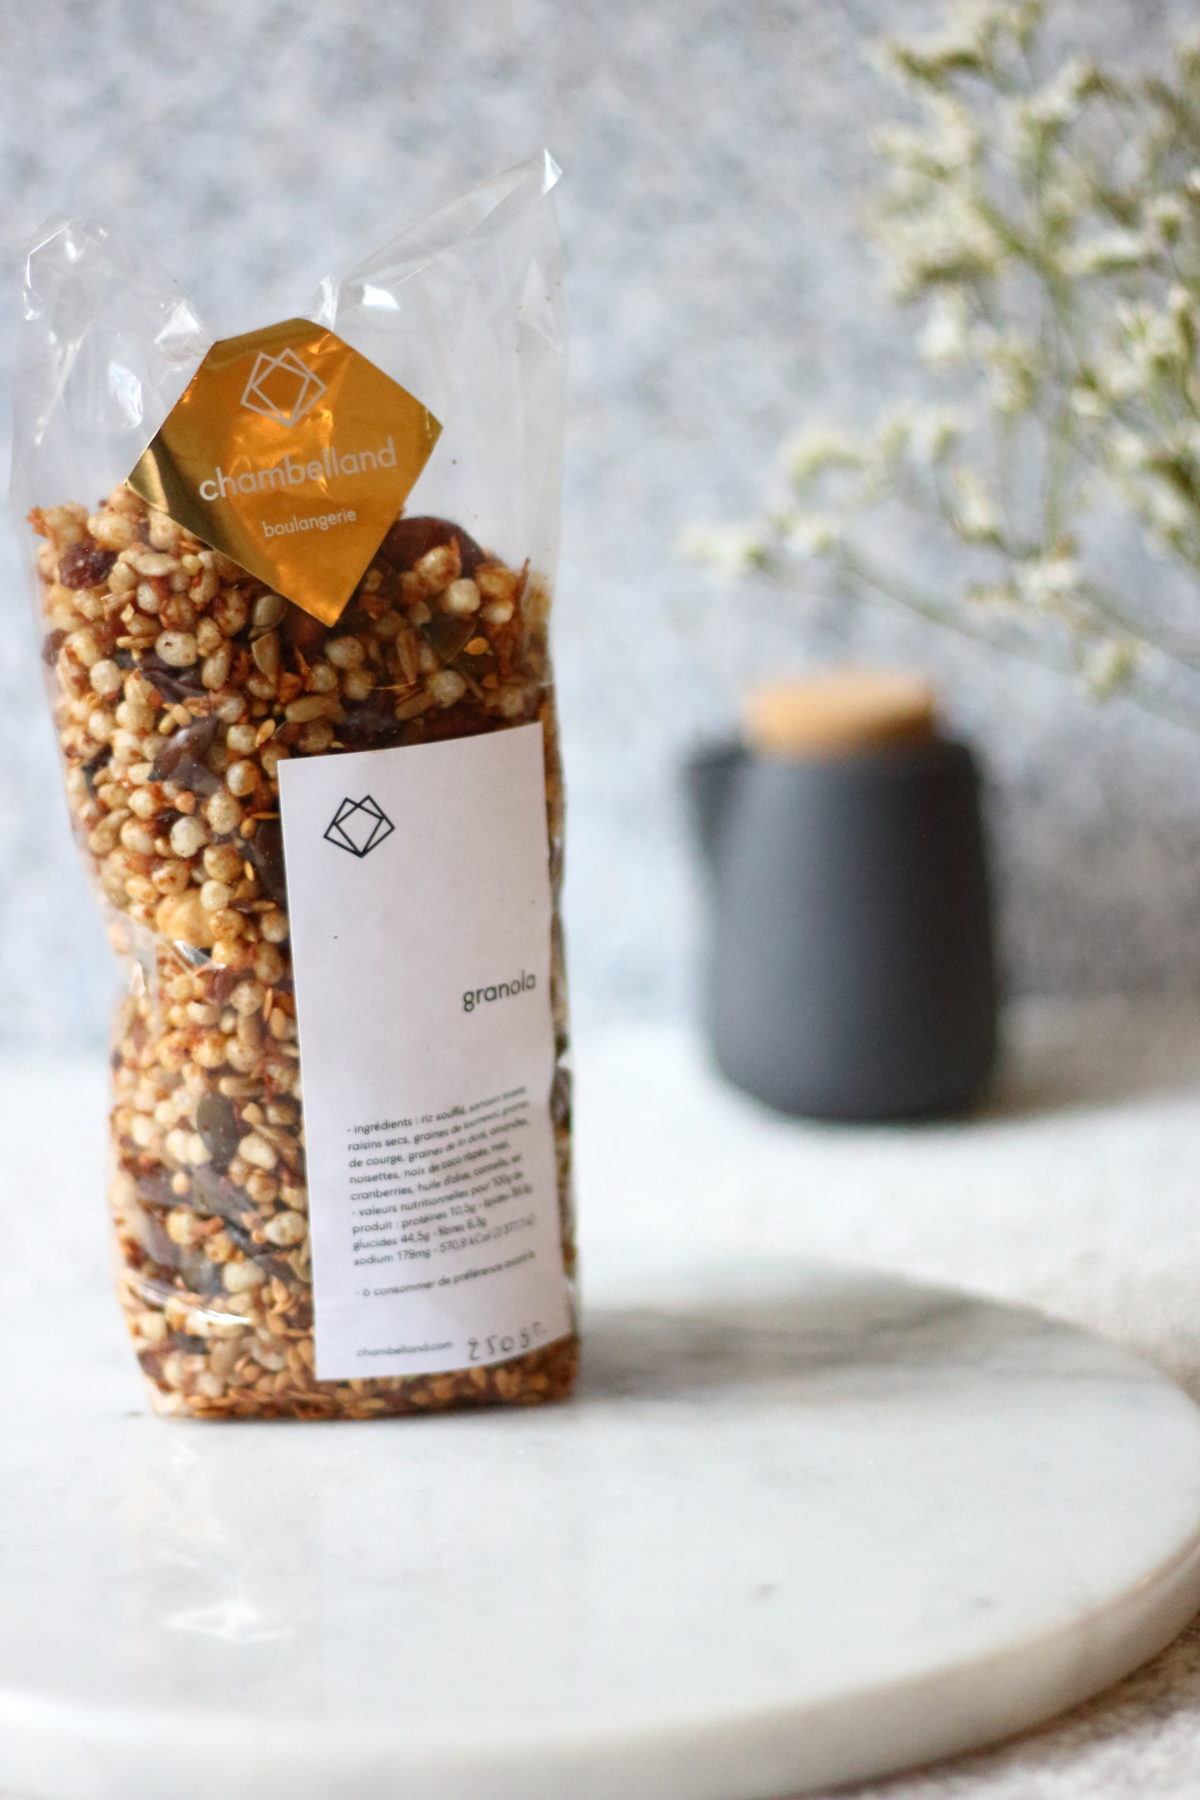 Chambelland the best gluten free Granola in Paris